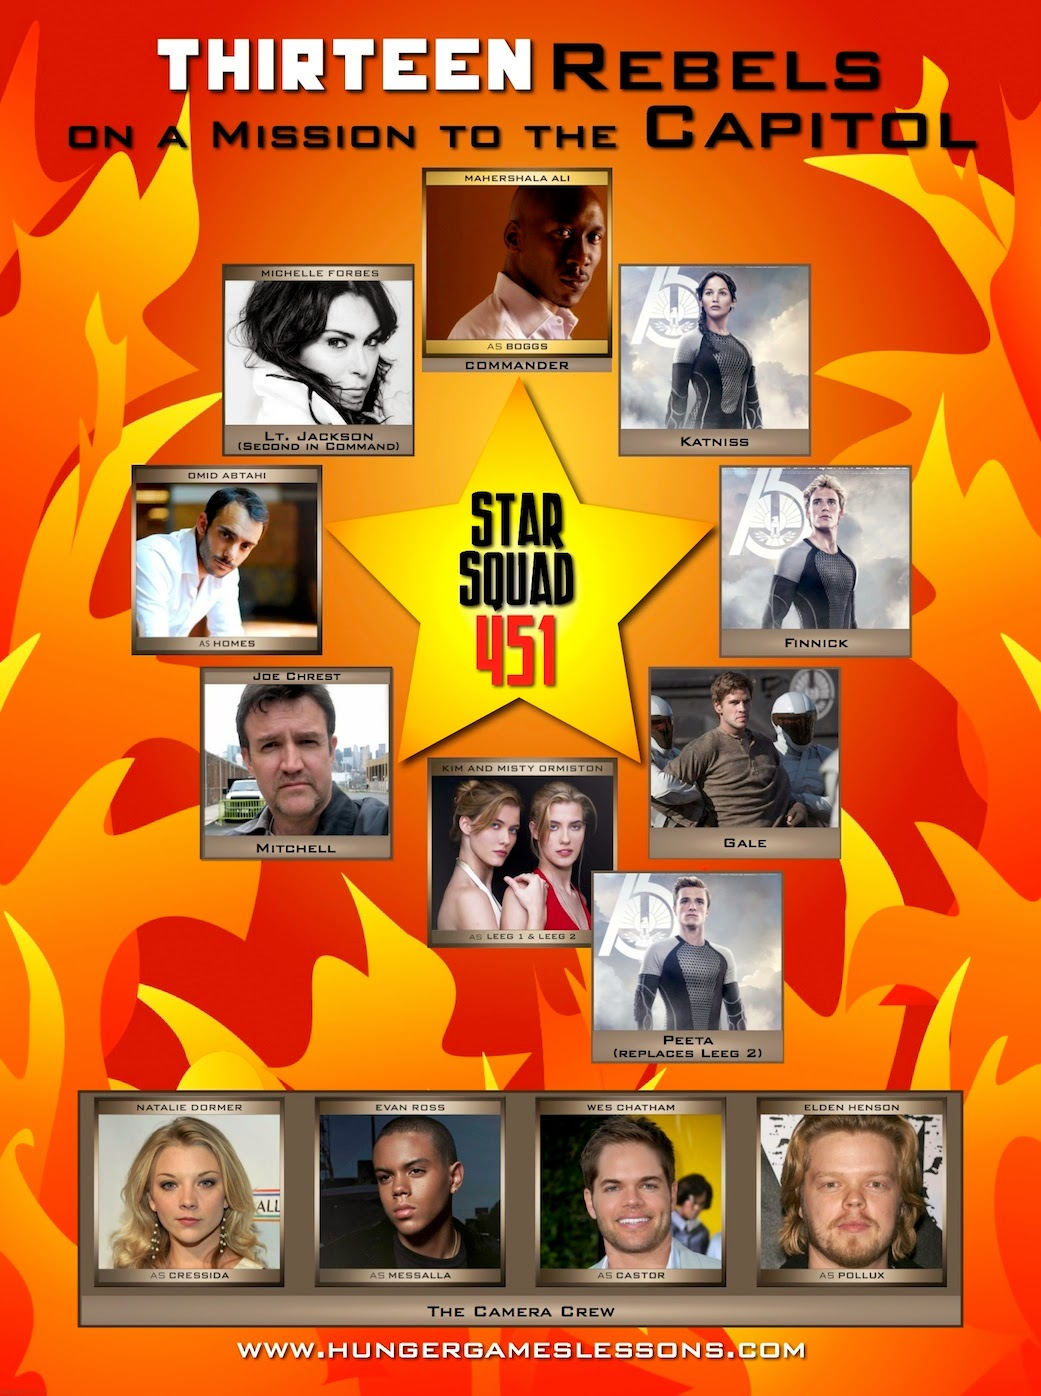 Mockingjay's Star Squad 451  - Graphic from www.hungergameslessons.com